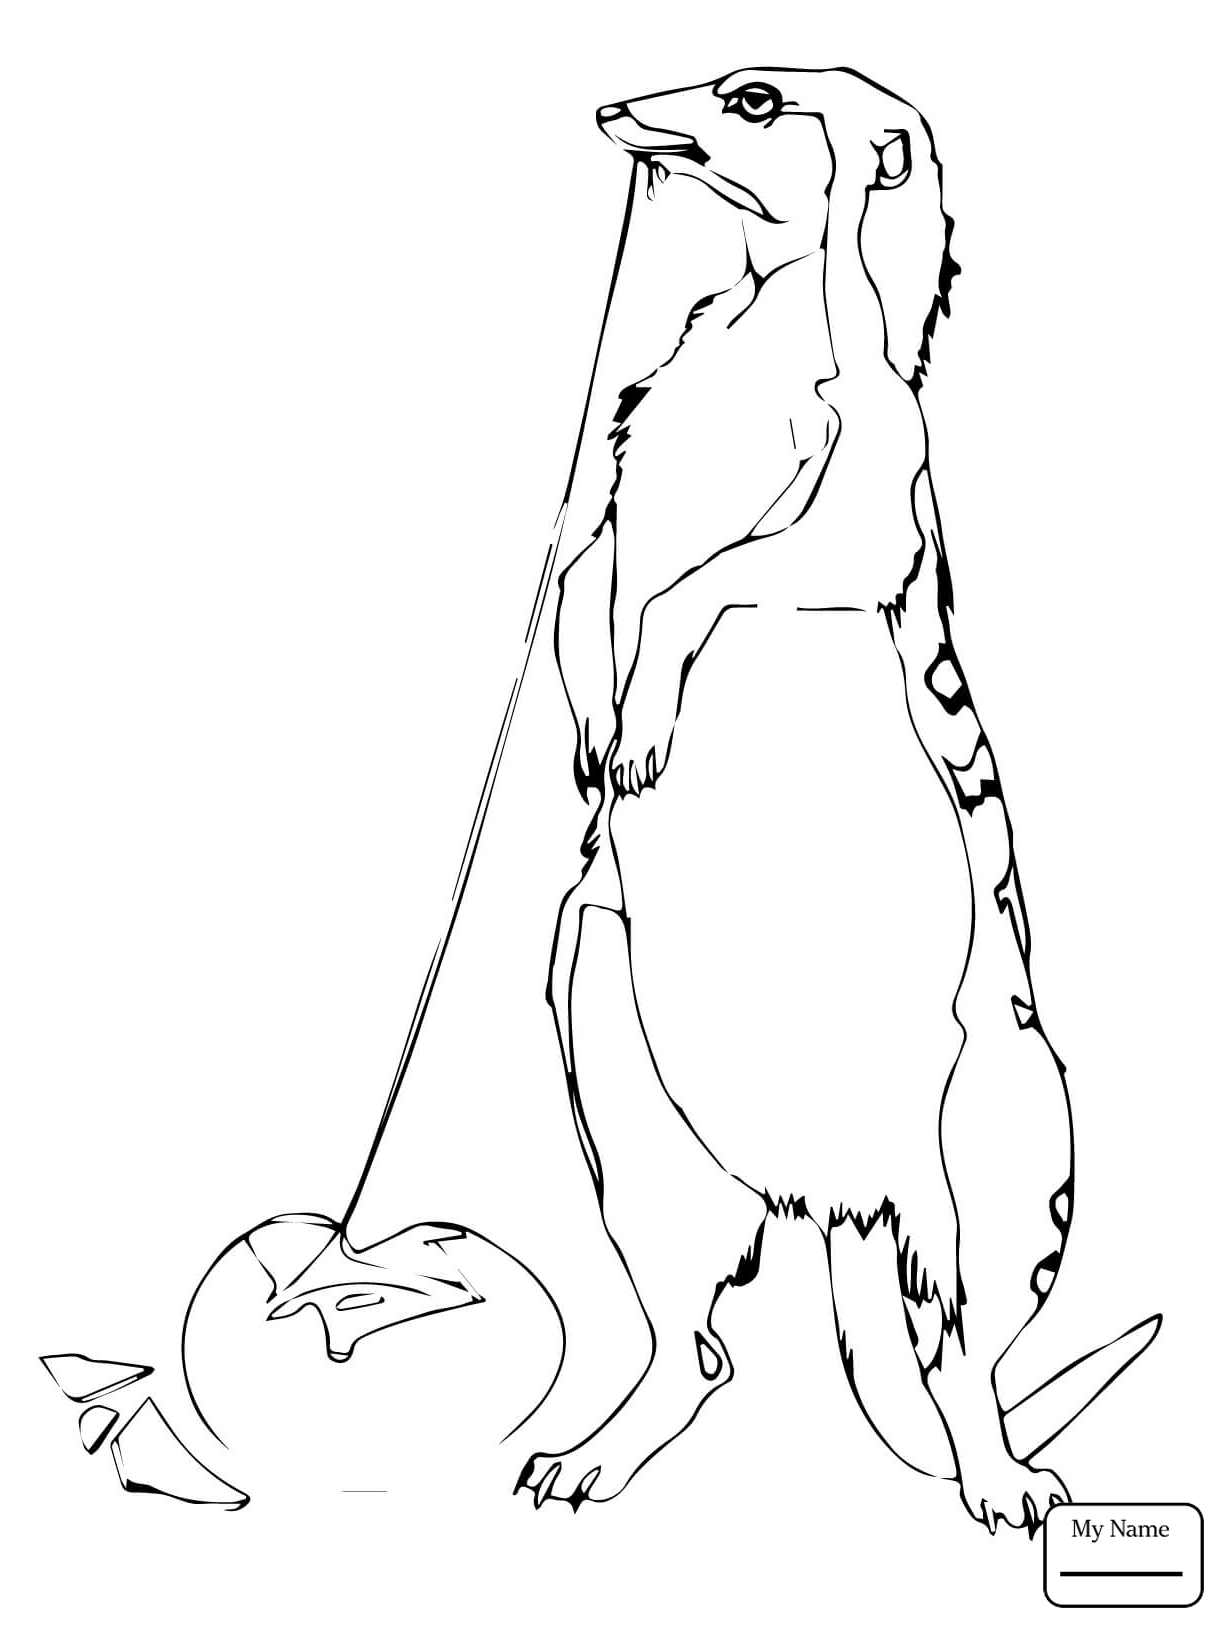 1224x1632 Coloring Pages For Kids Cobra Vs Mongoose Mongooses Mammals